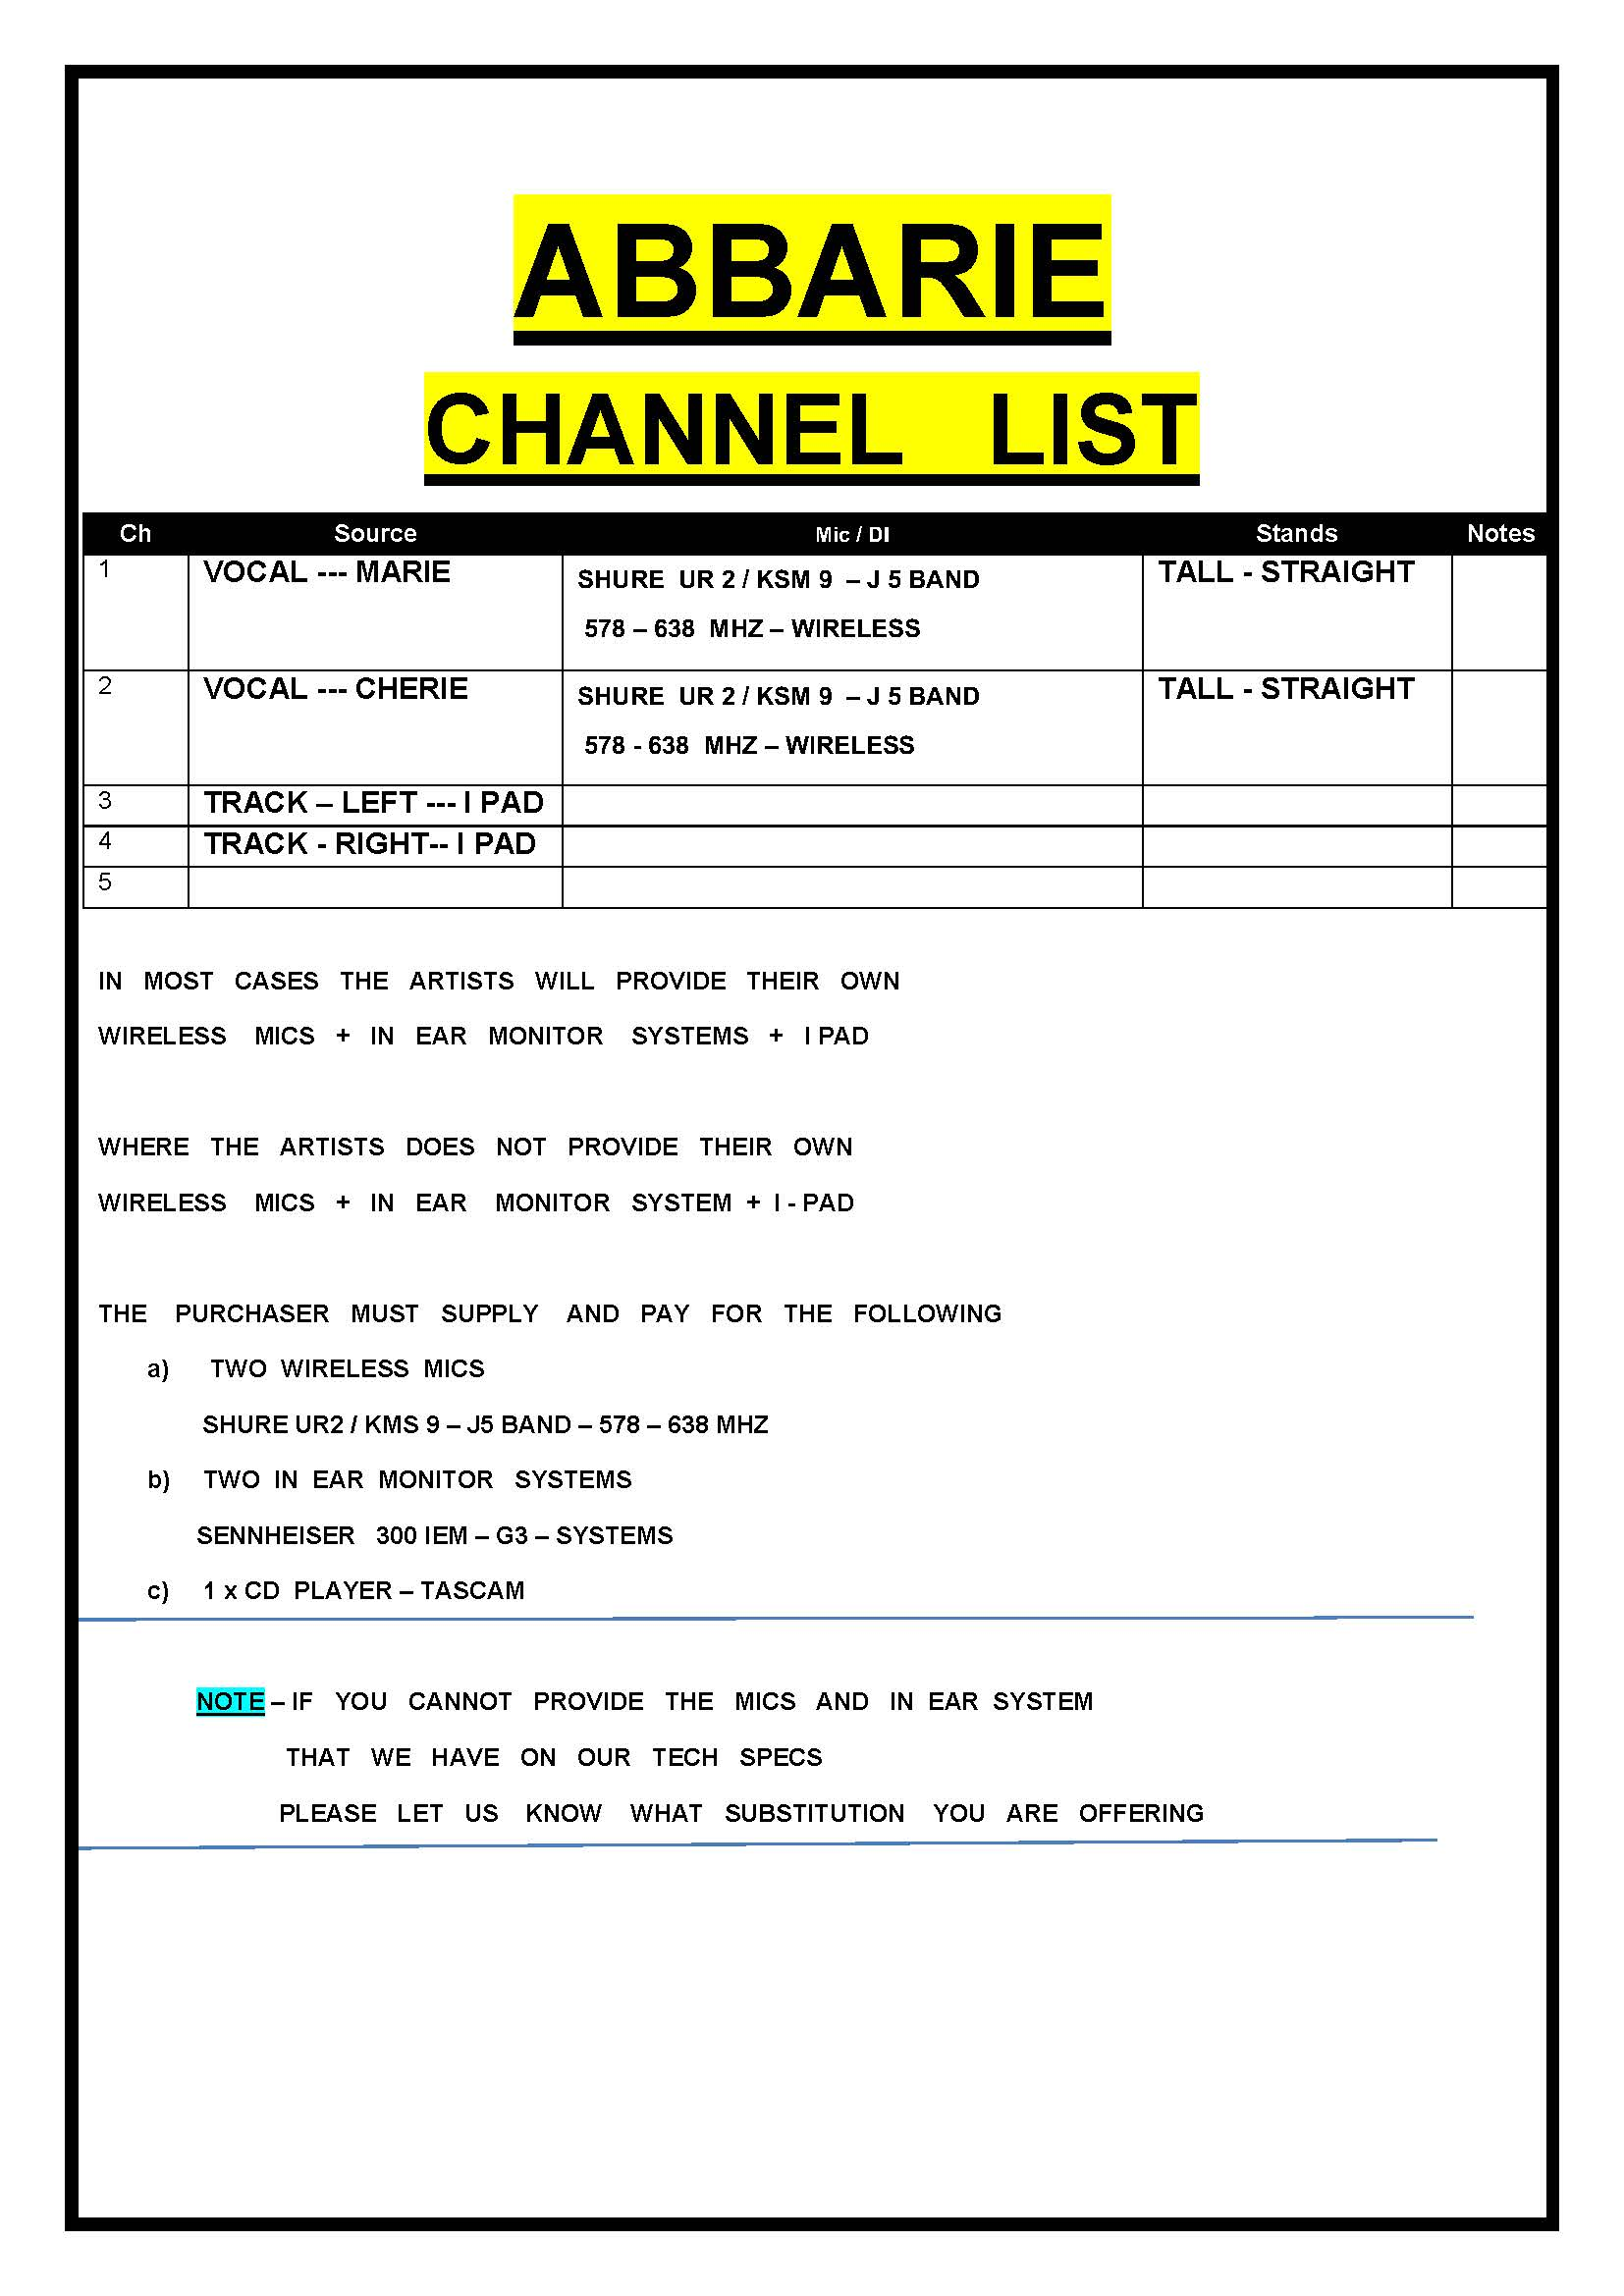 ABBARIE - CHANNEL LIST - 1